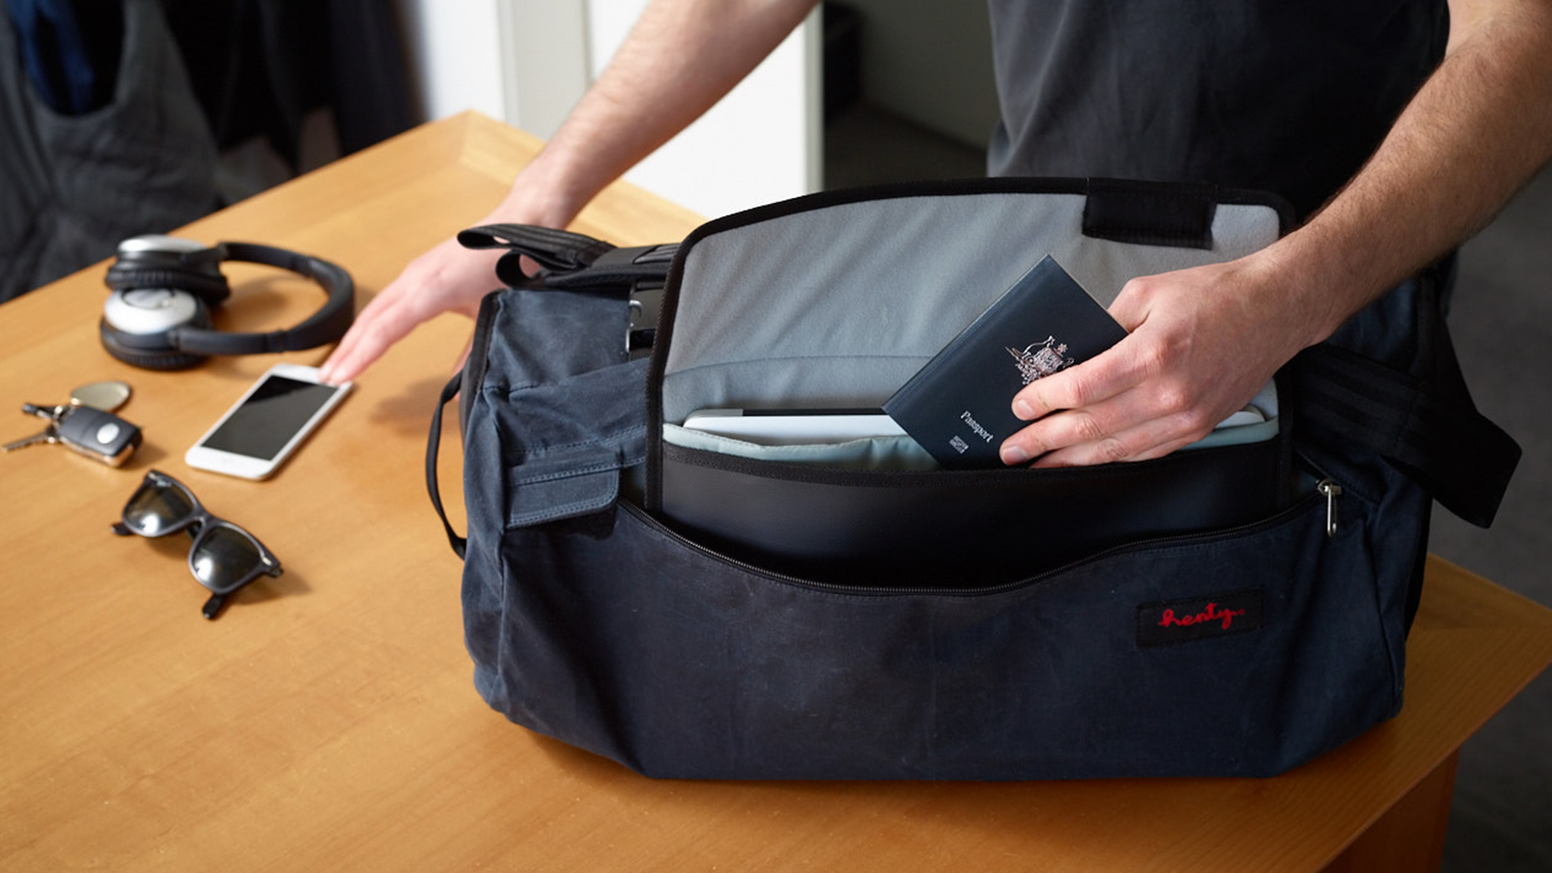 Designed for adventure travel & commuting. Outer garment bag keeps clothes crease-free. Grab & go inner bag for gym & day trips.